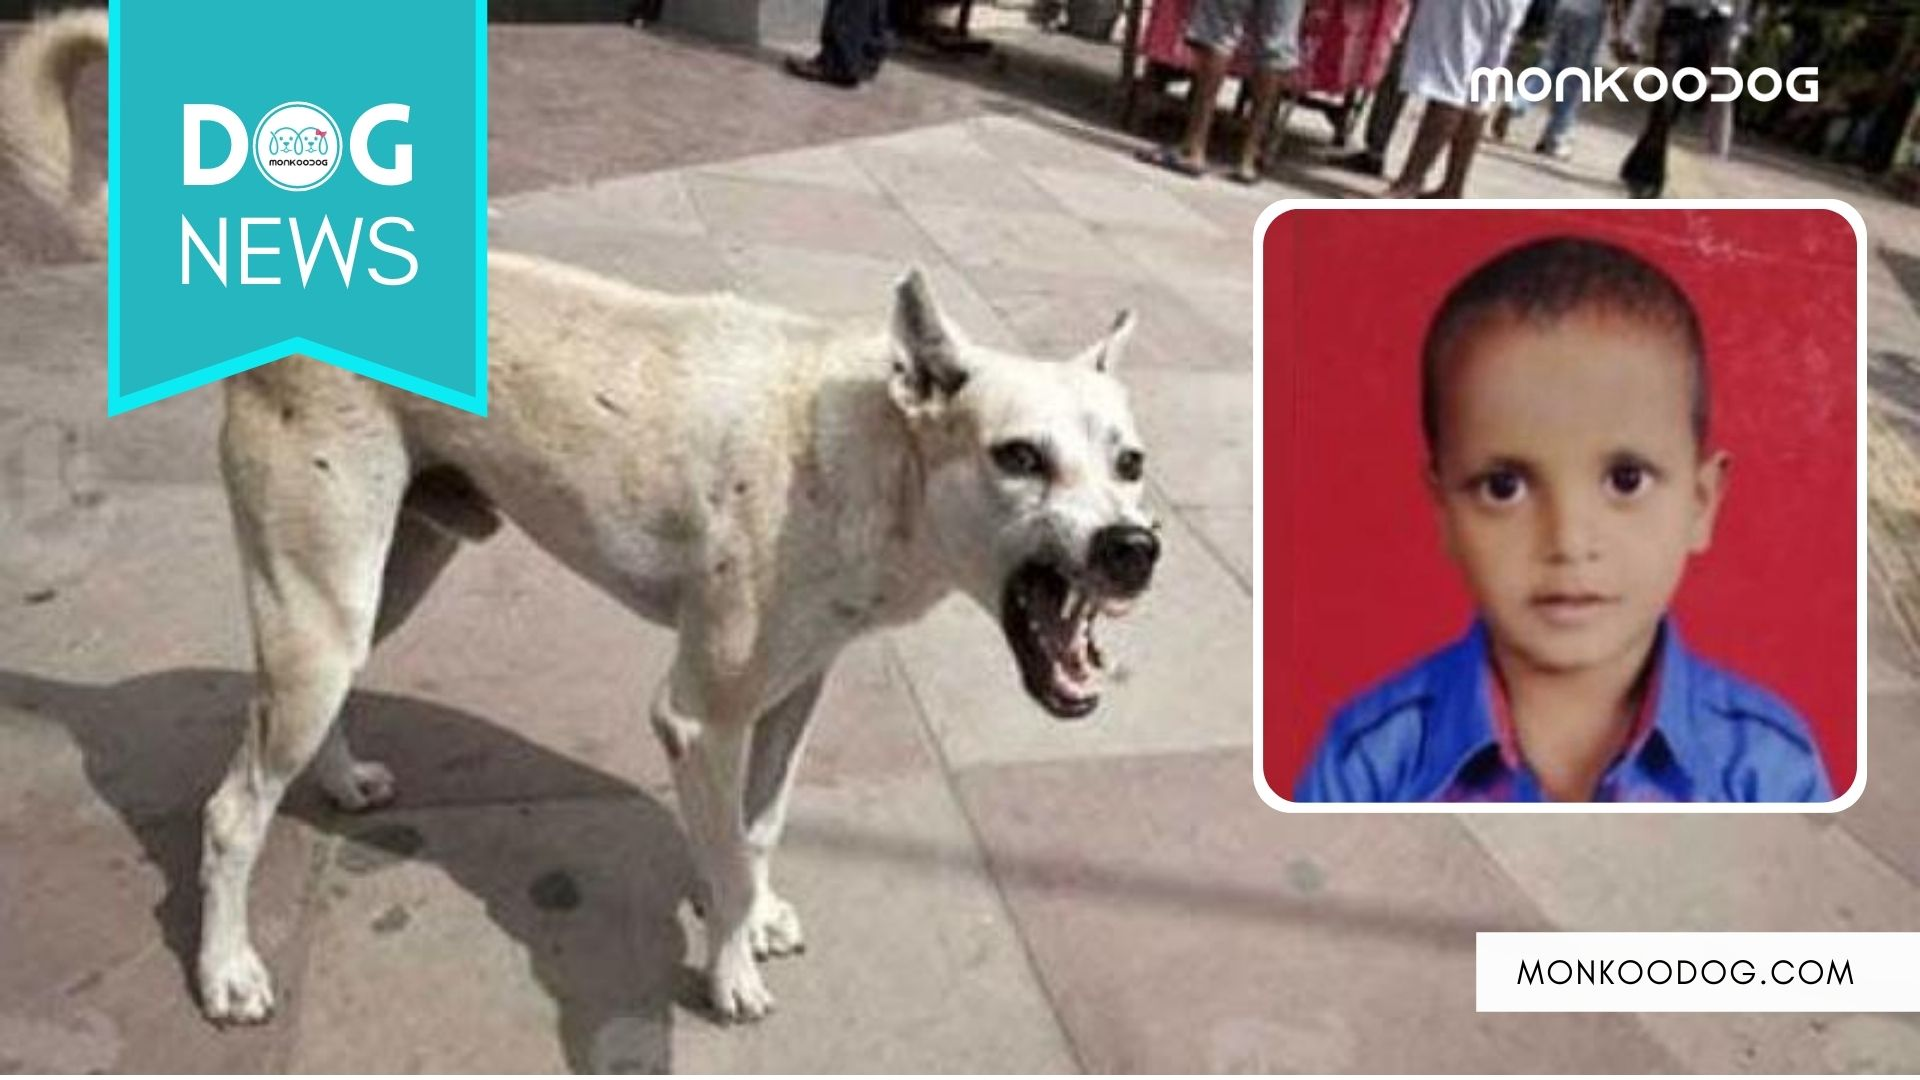 One world, two different viral news, a dog saves a life while the other mauls one to death.